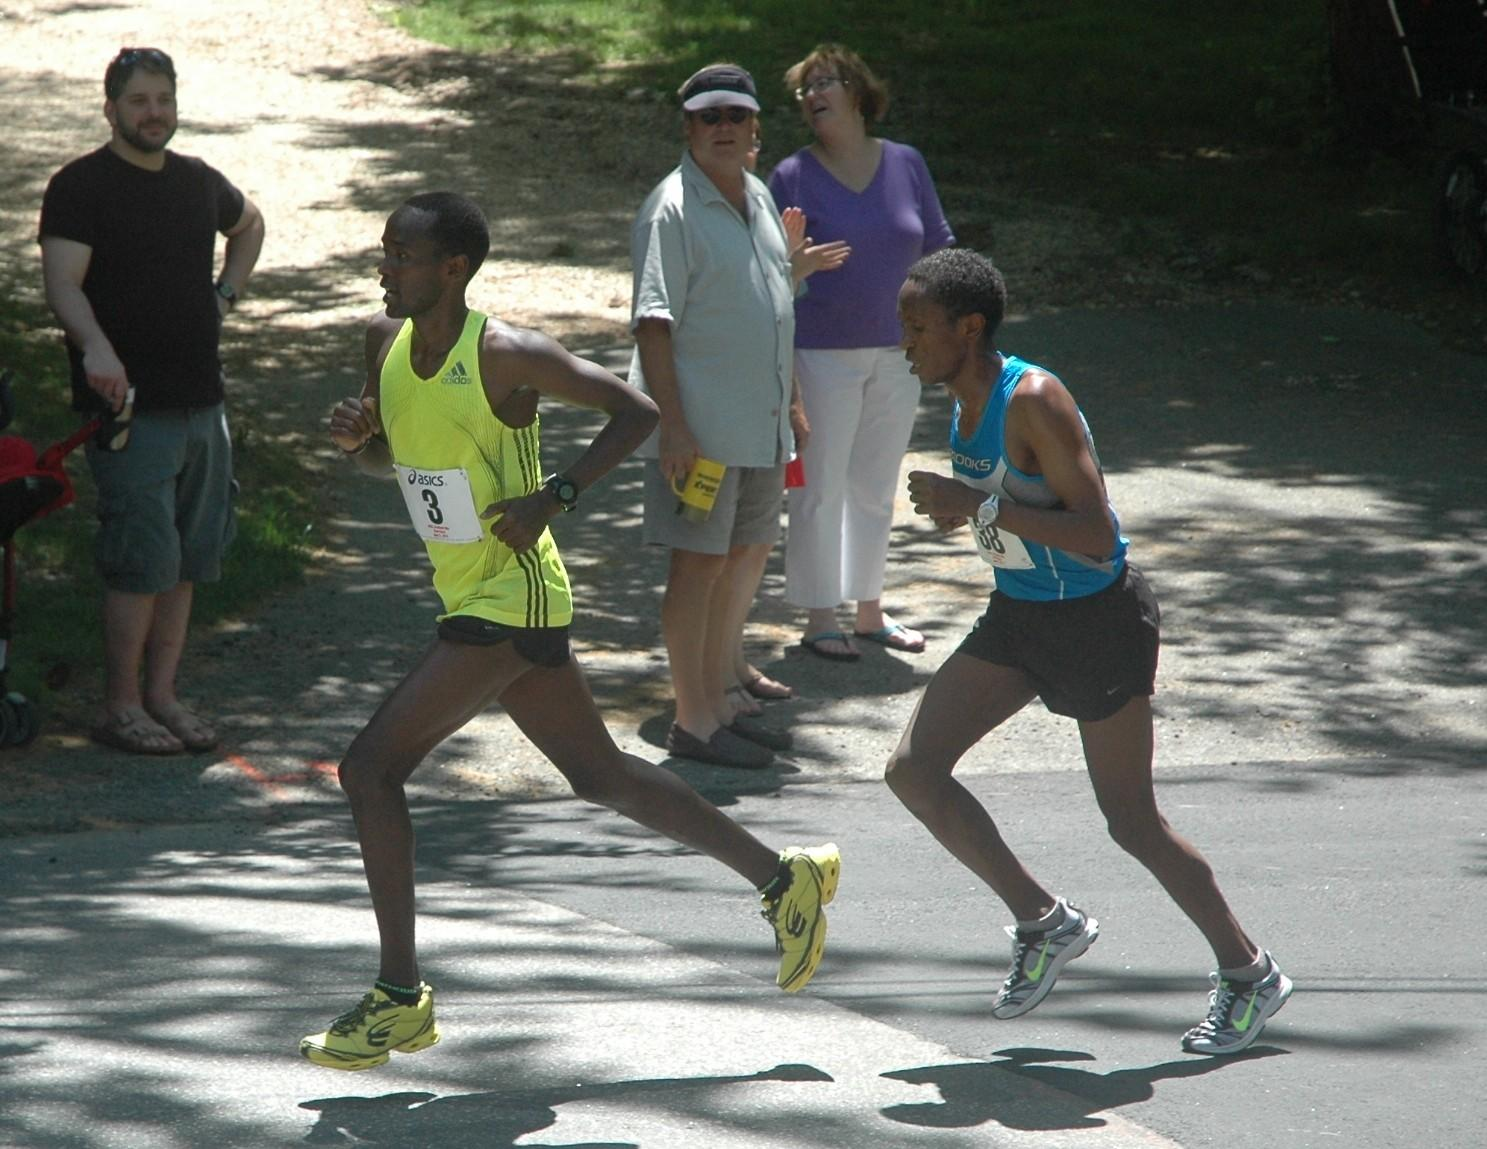 Eliud Ngetich of Kenya stays ahead of Allele Megersa of Ethiopia going up the Gallows Lane hill in the seventh mile of the 7.1-mile Litchfield Hills Road Race Sunday afternoon. Ngetich won in 34:40 and Megersa was second in 34:45.